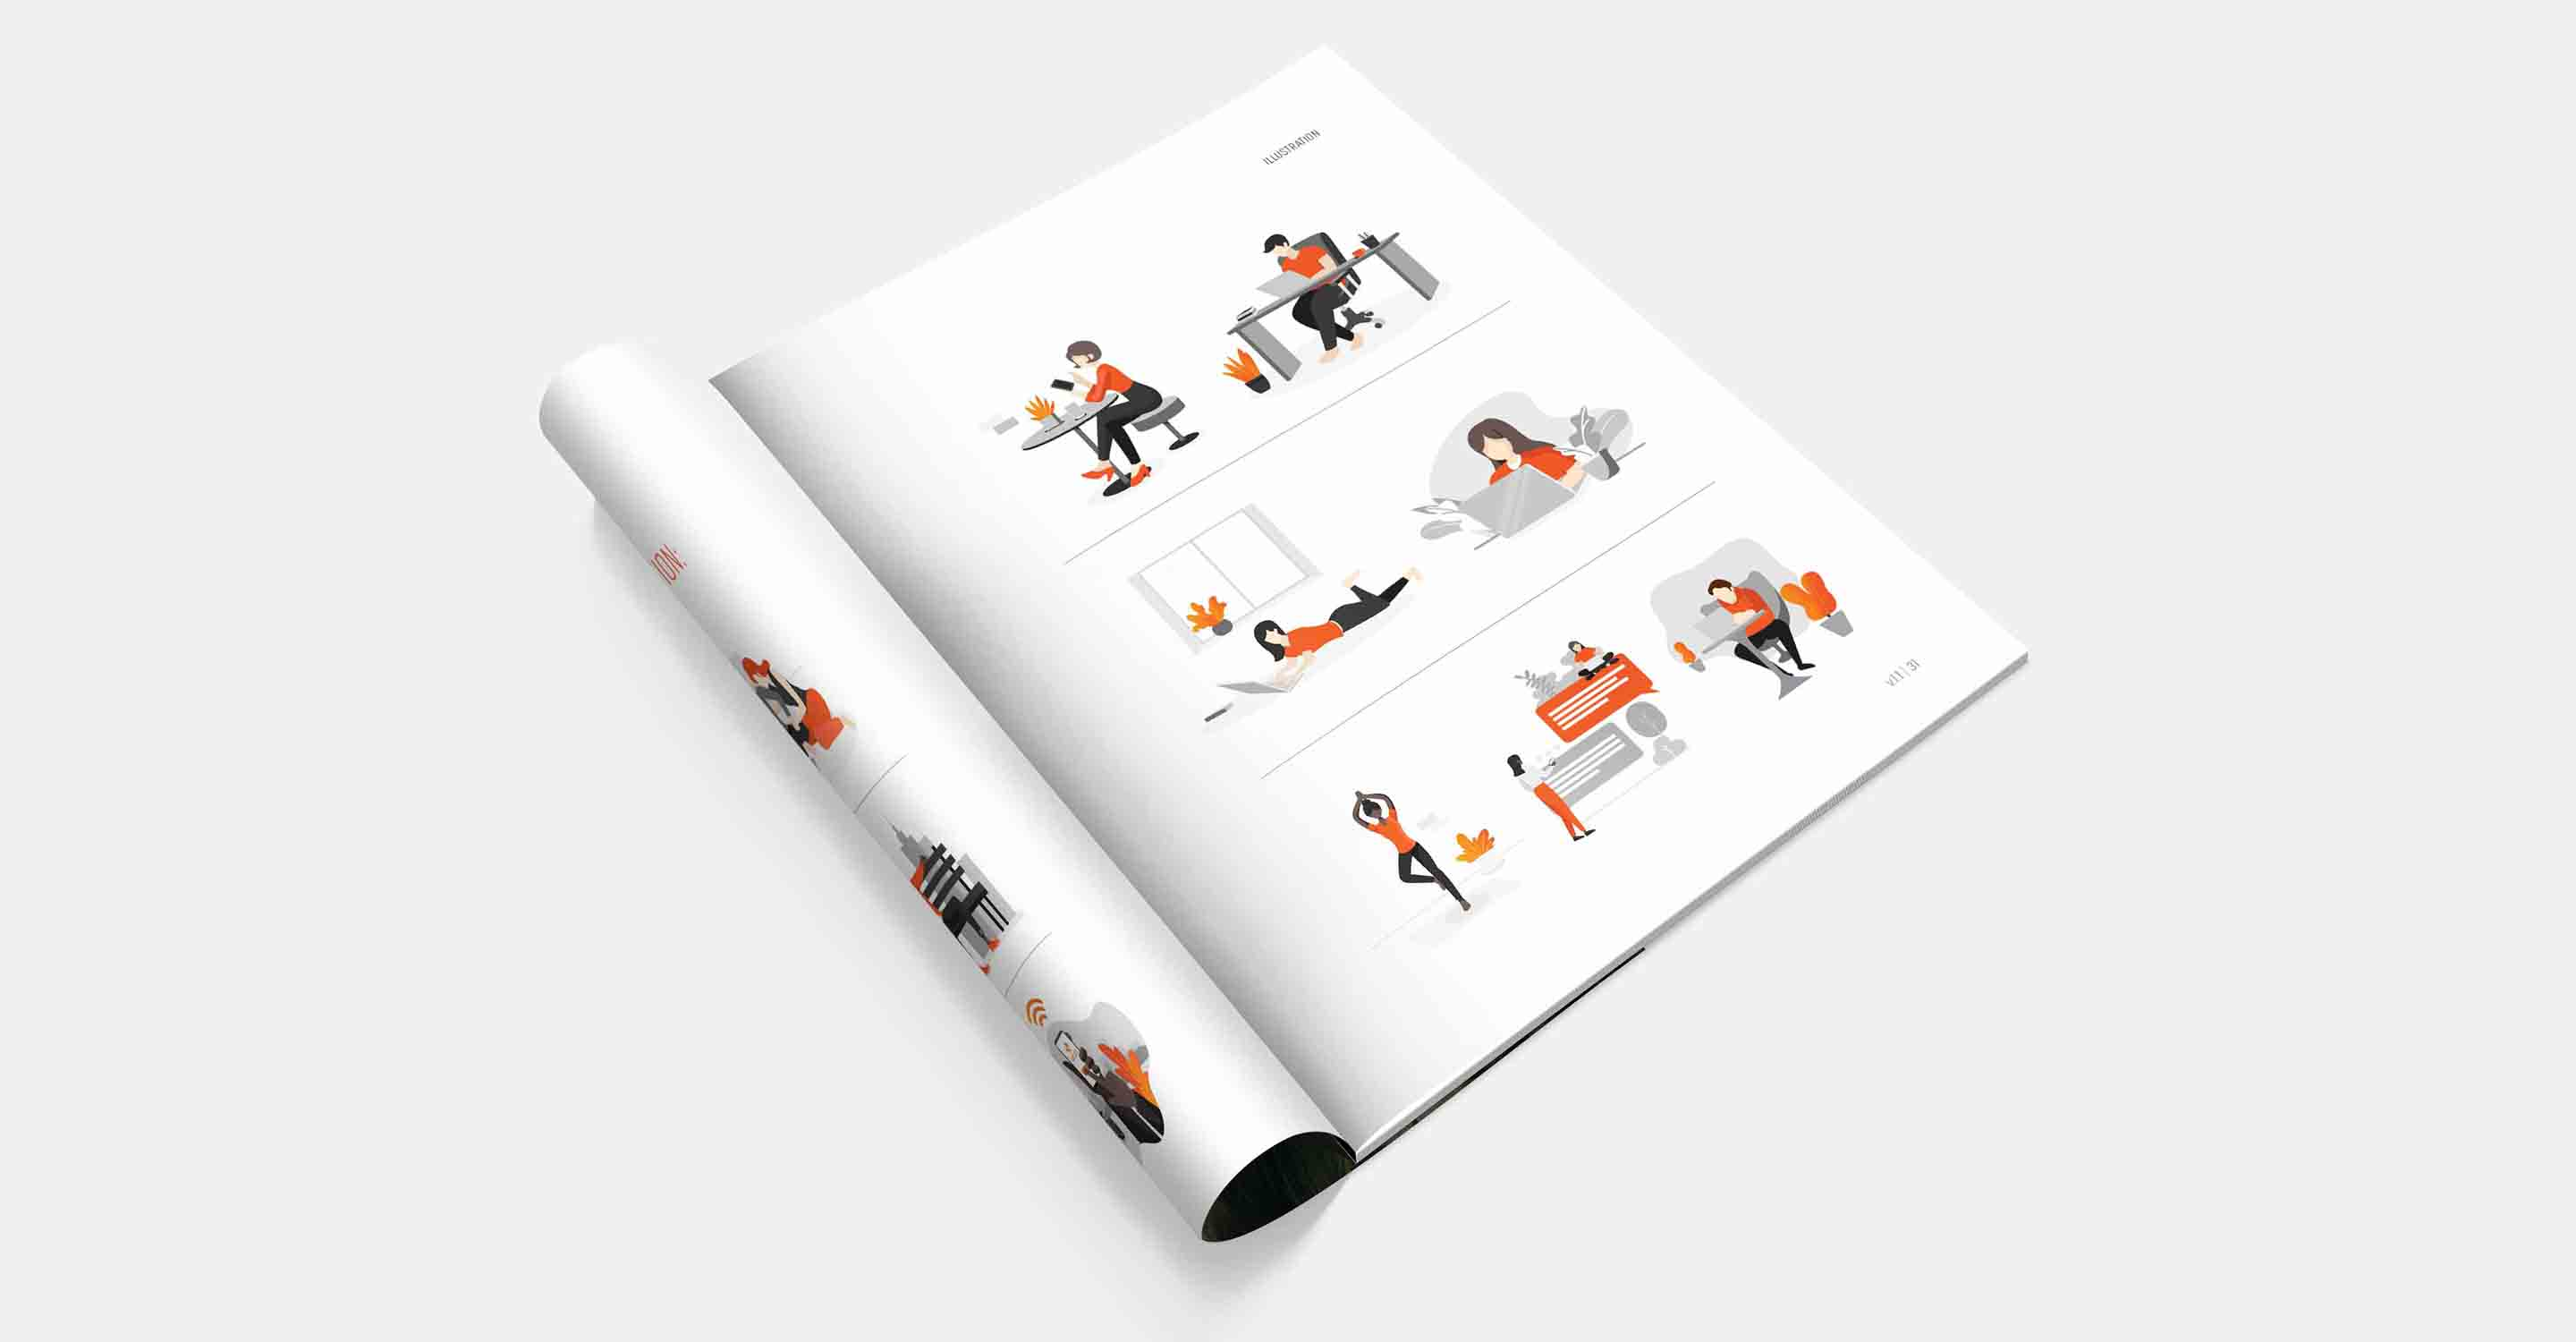 A page from the Lumina Imaging brand guide produced by _defyThemAll: a creative brand and digital agency